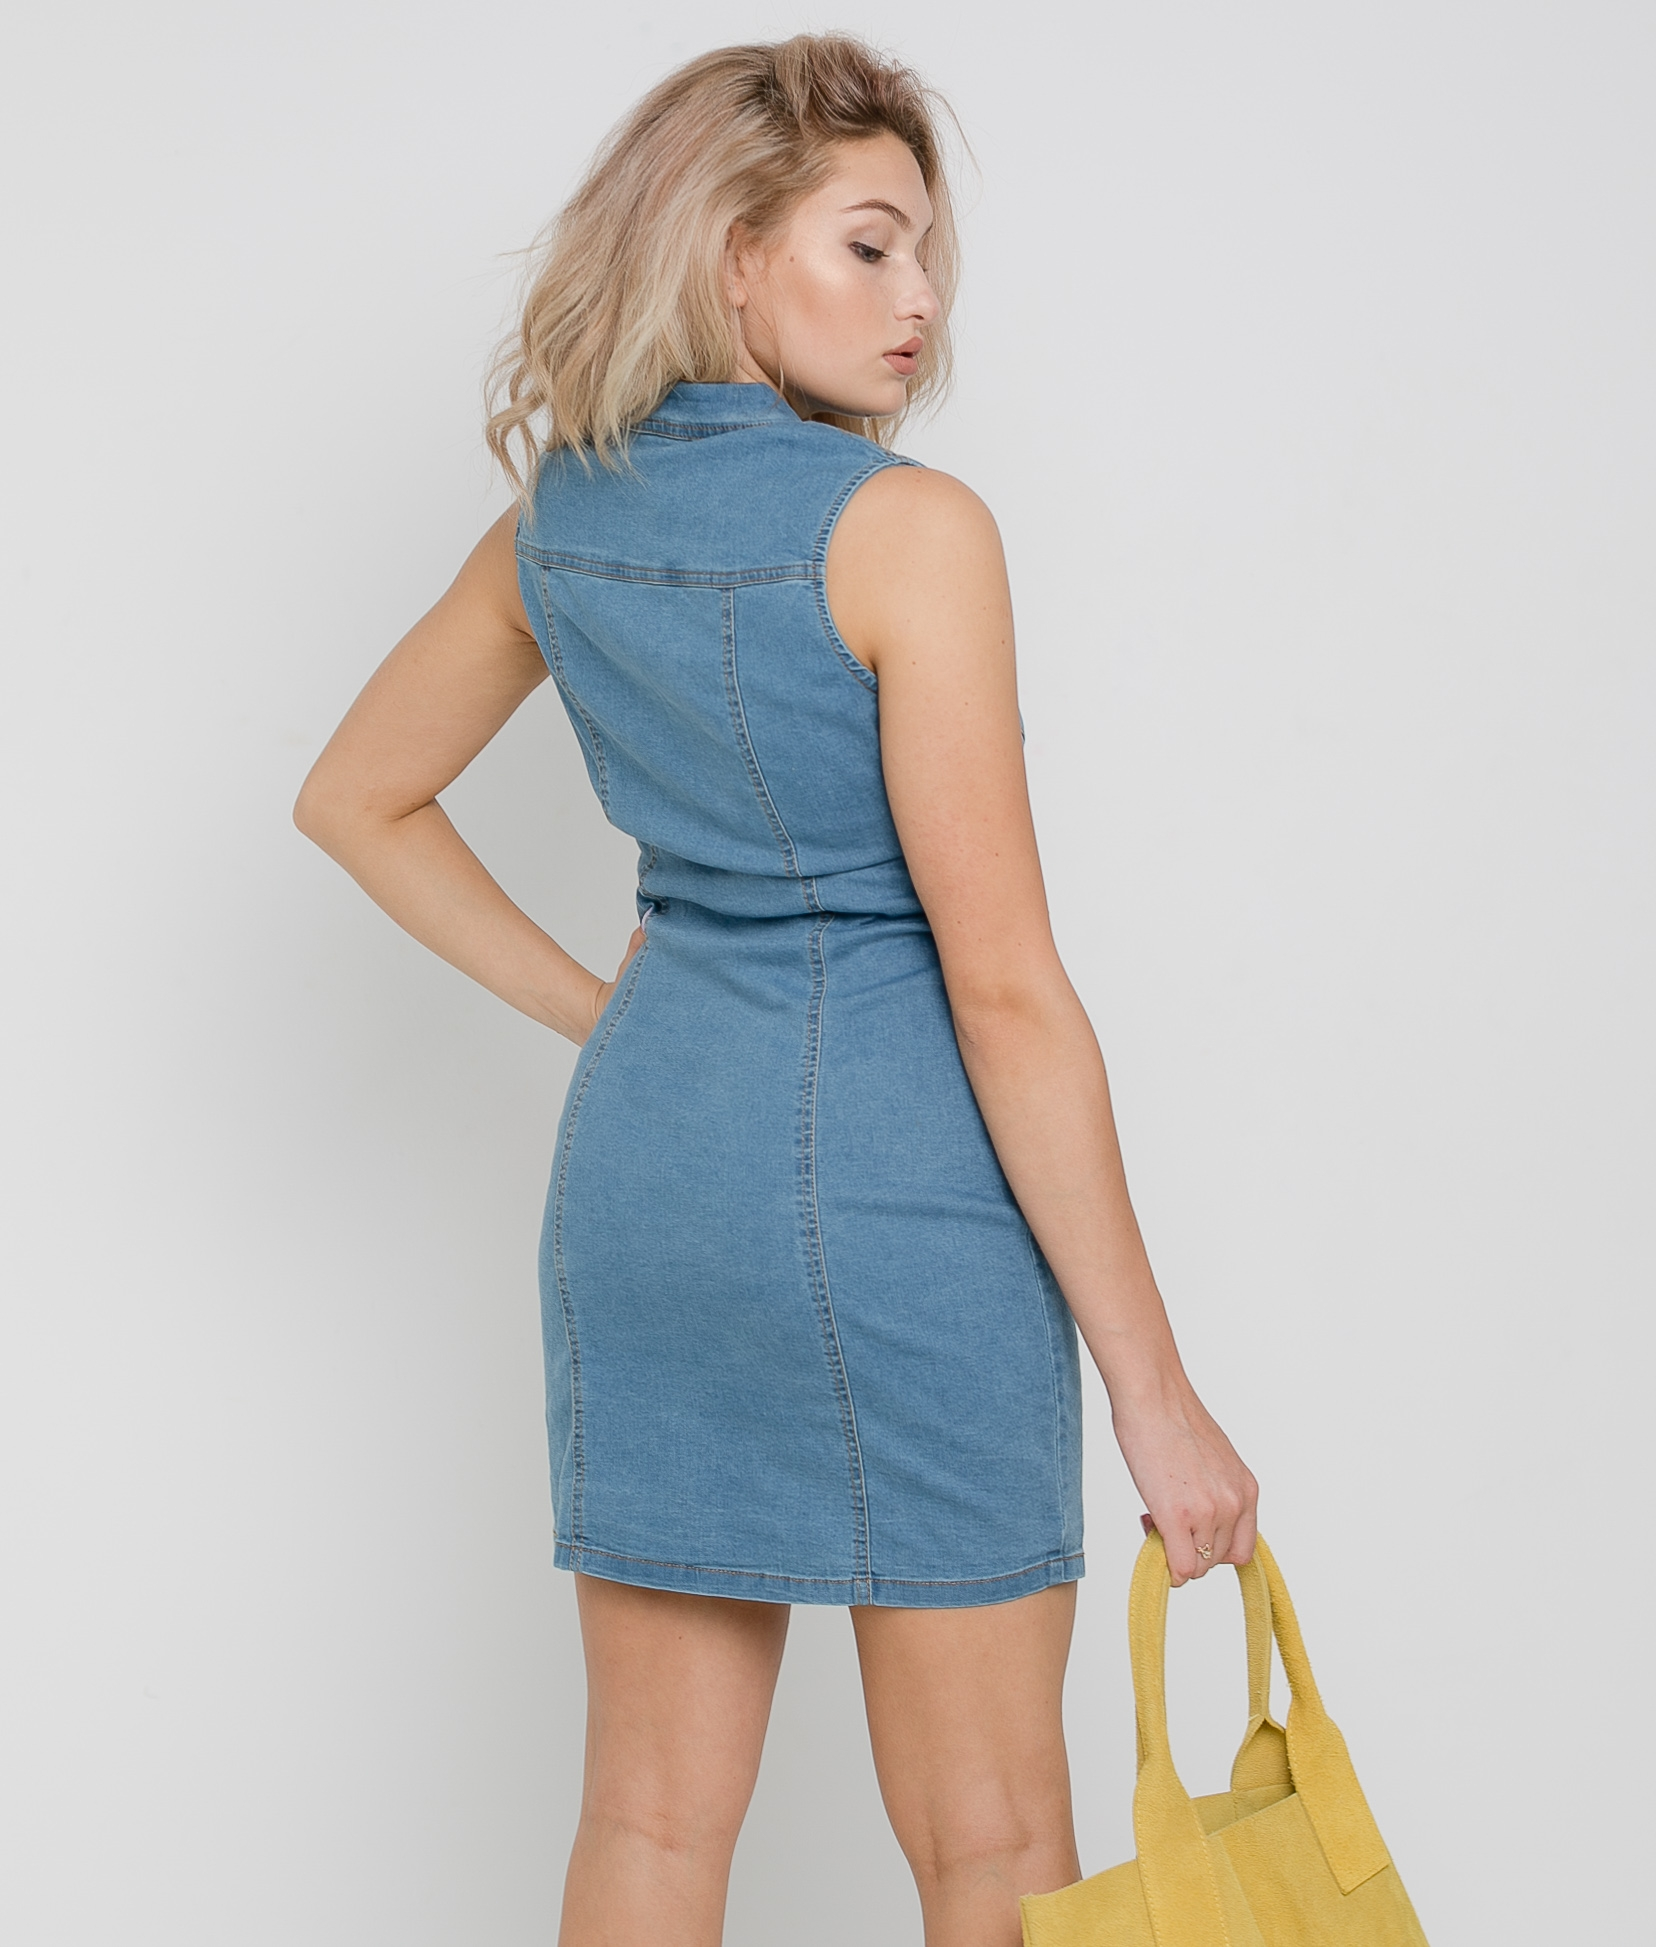 PITULIS DRESS - DENIM